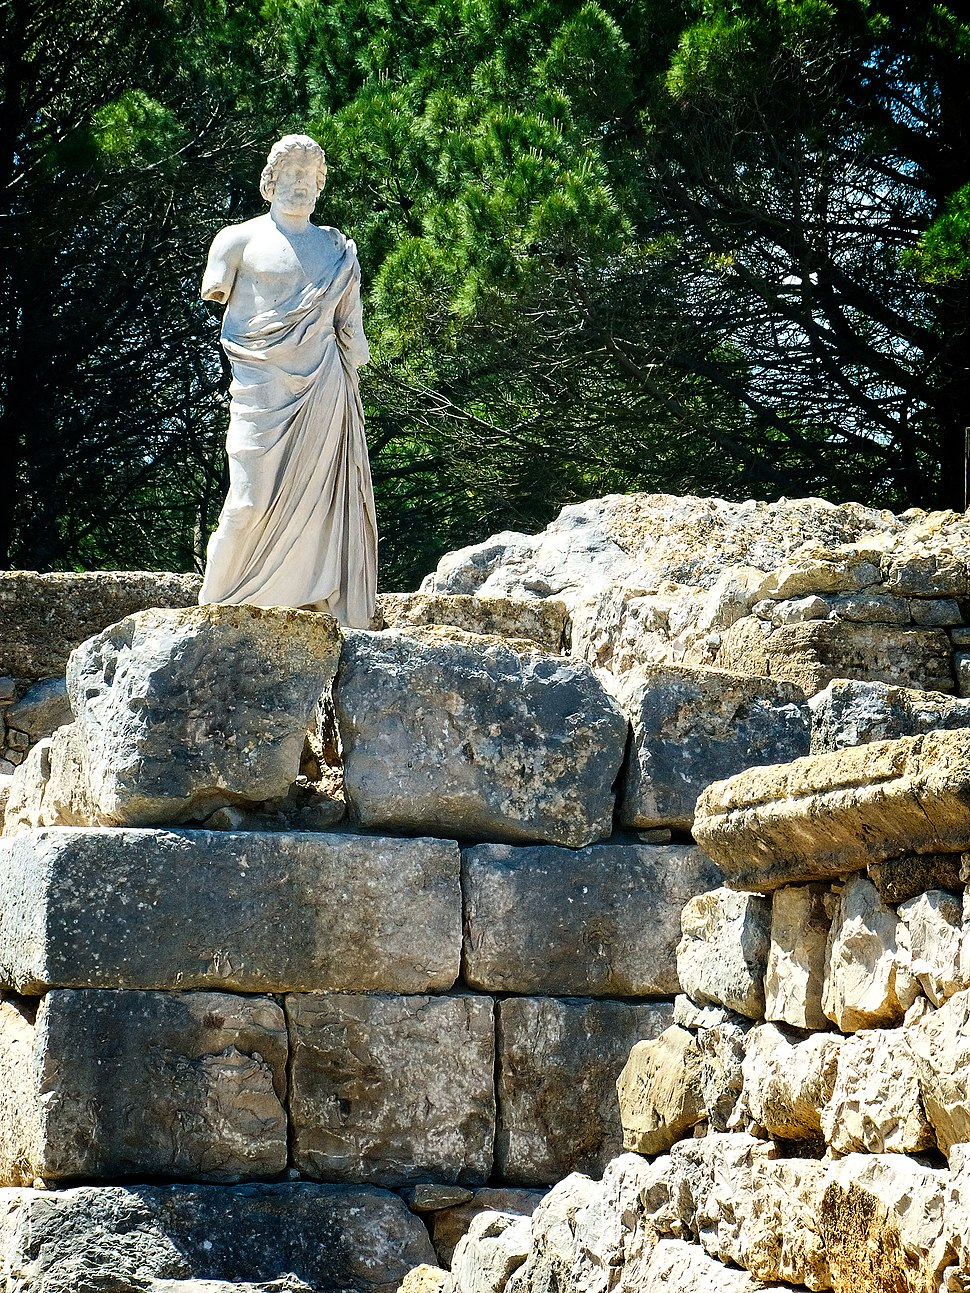 Reproduction of the statue of Aesclepius on the remains of a Greek rampart in the ancient city of Neapolis at the archaeological site of Empúries